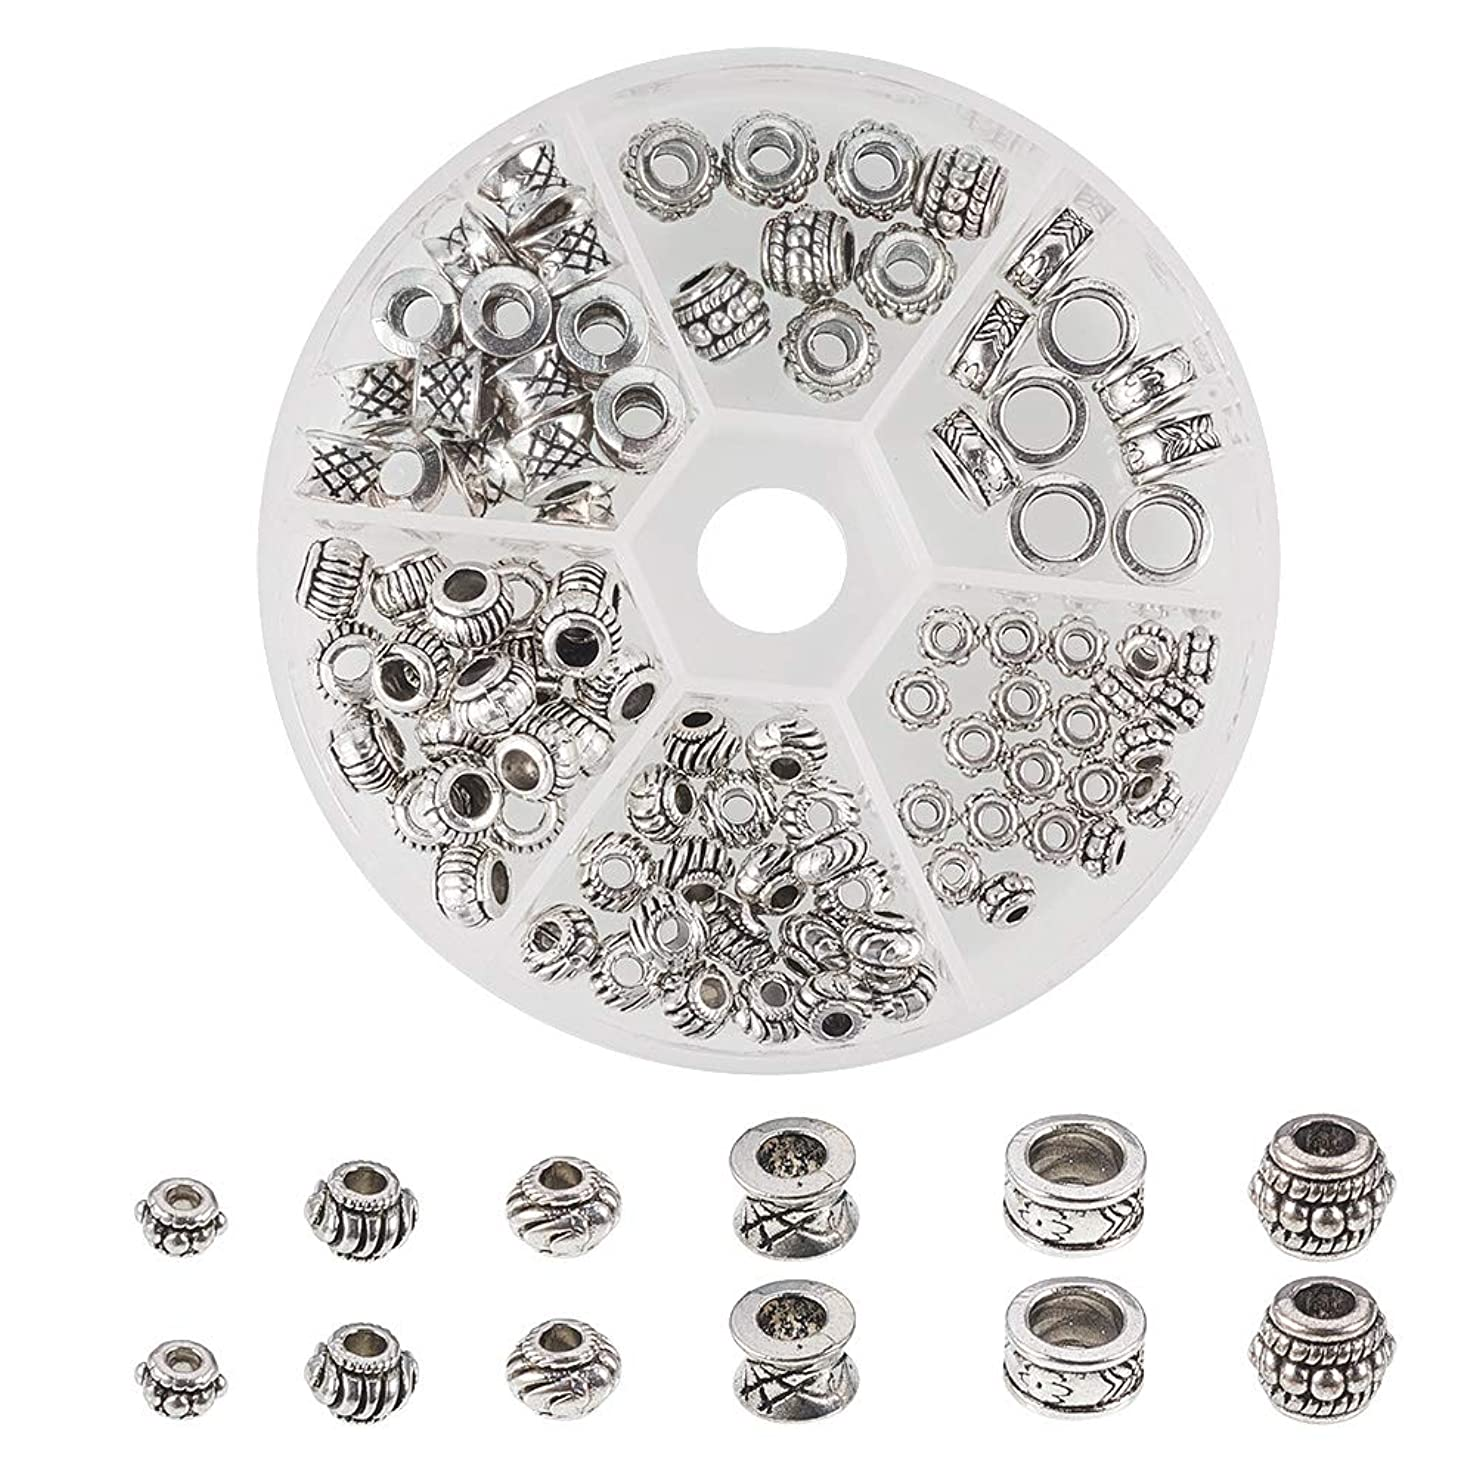 PH PandaHall 130pcs 6 Style Antique Silver Tibetan Alloy Column Spacer Beads Rondelle Tube Metal Spacers for Bracelet Necklace Jewelry Making